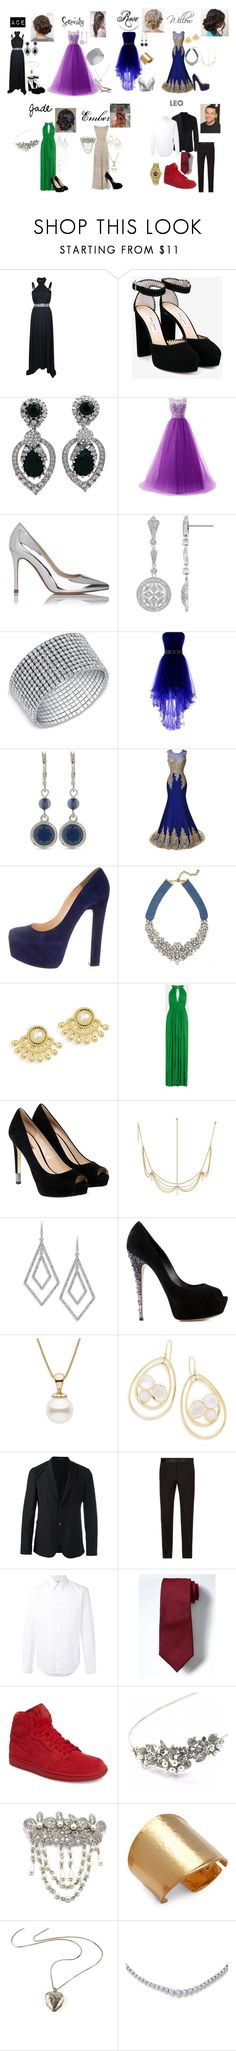 """Prom outfits"" by k-popcornpaco on Polyvore featuring Versace, Jimmy Choo, Ciner, L.K.Bennett, Nine West, Dolce&Gabbana, Christian Louboutin, BaubleBar, BCBGMAXAZRIA and GUESS"